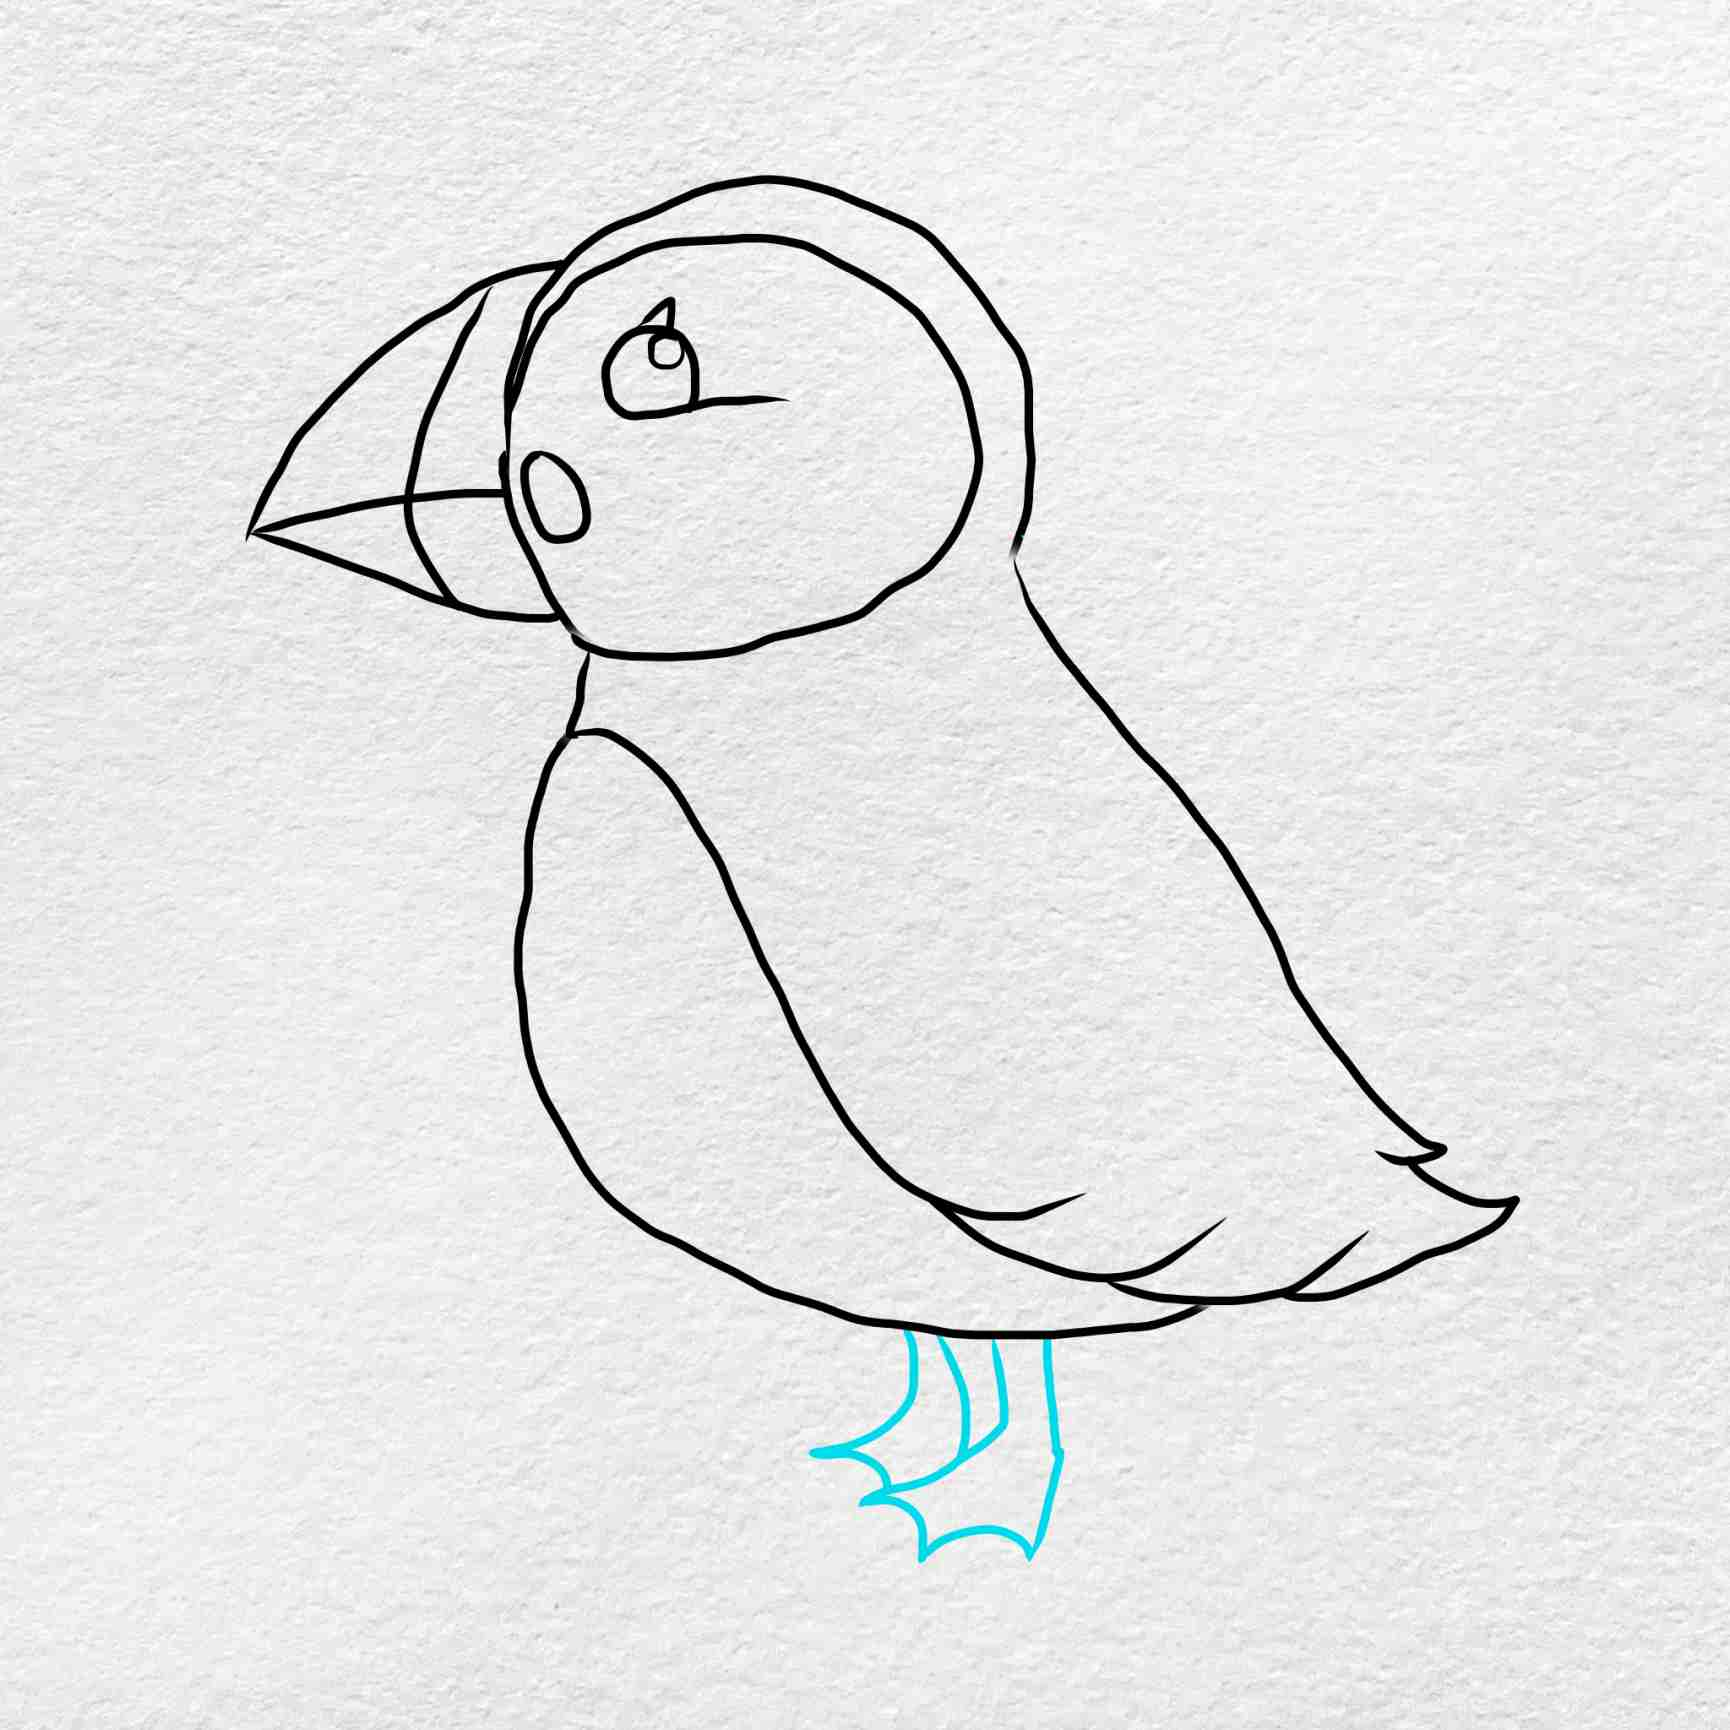 How To Draw Puffin: Step 5